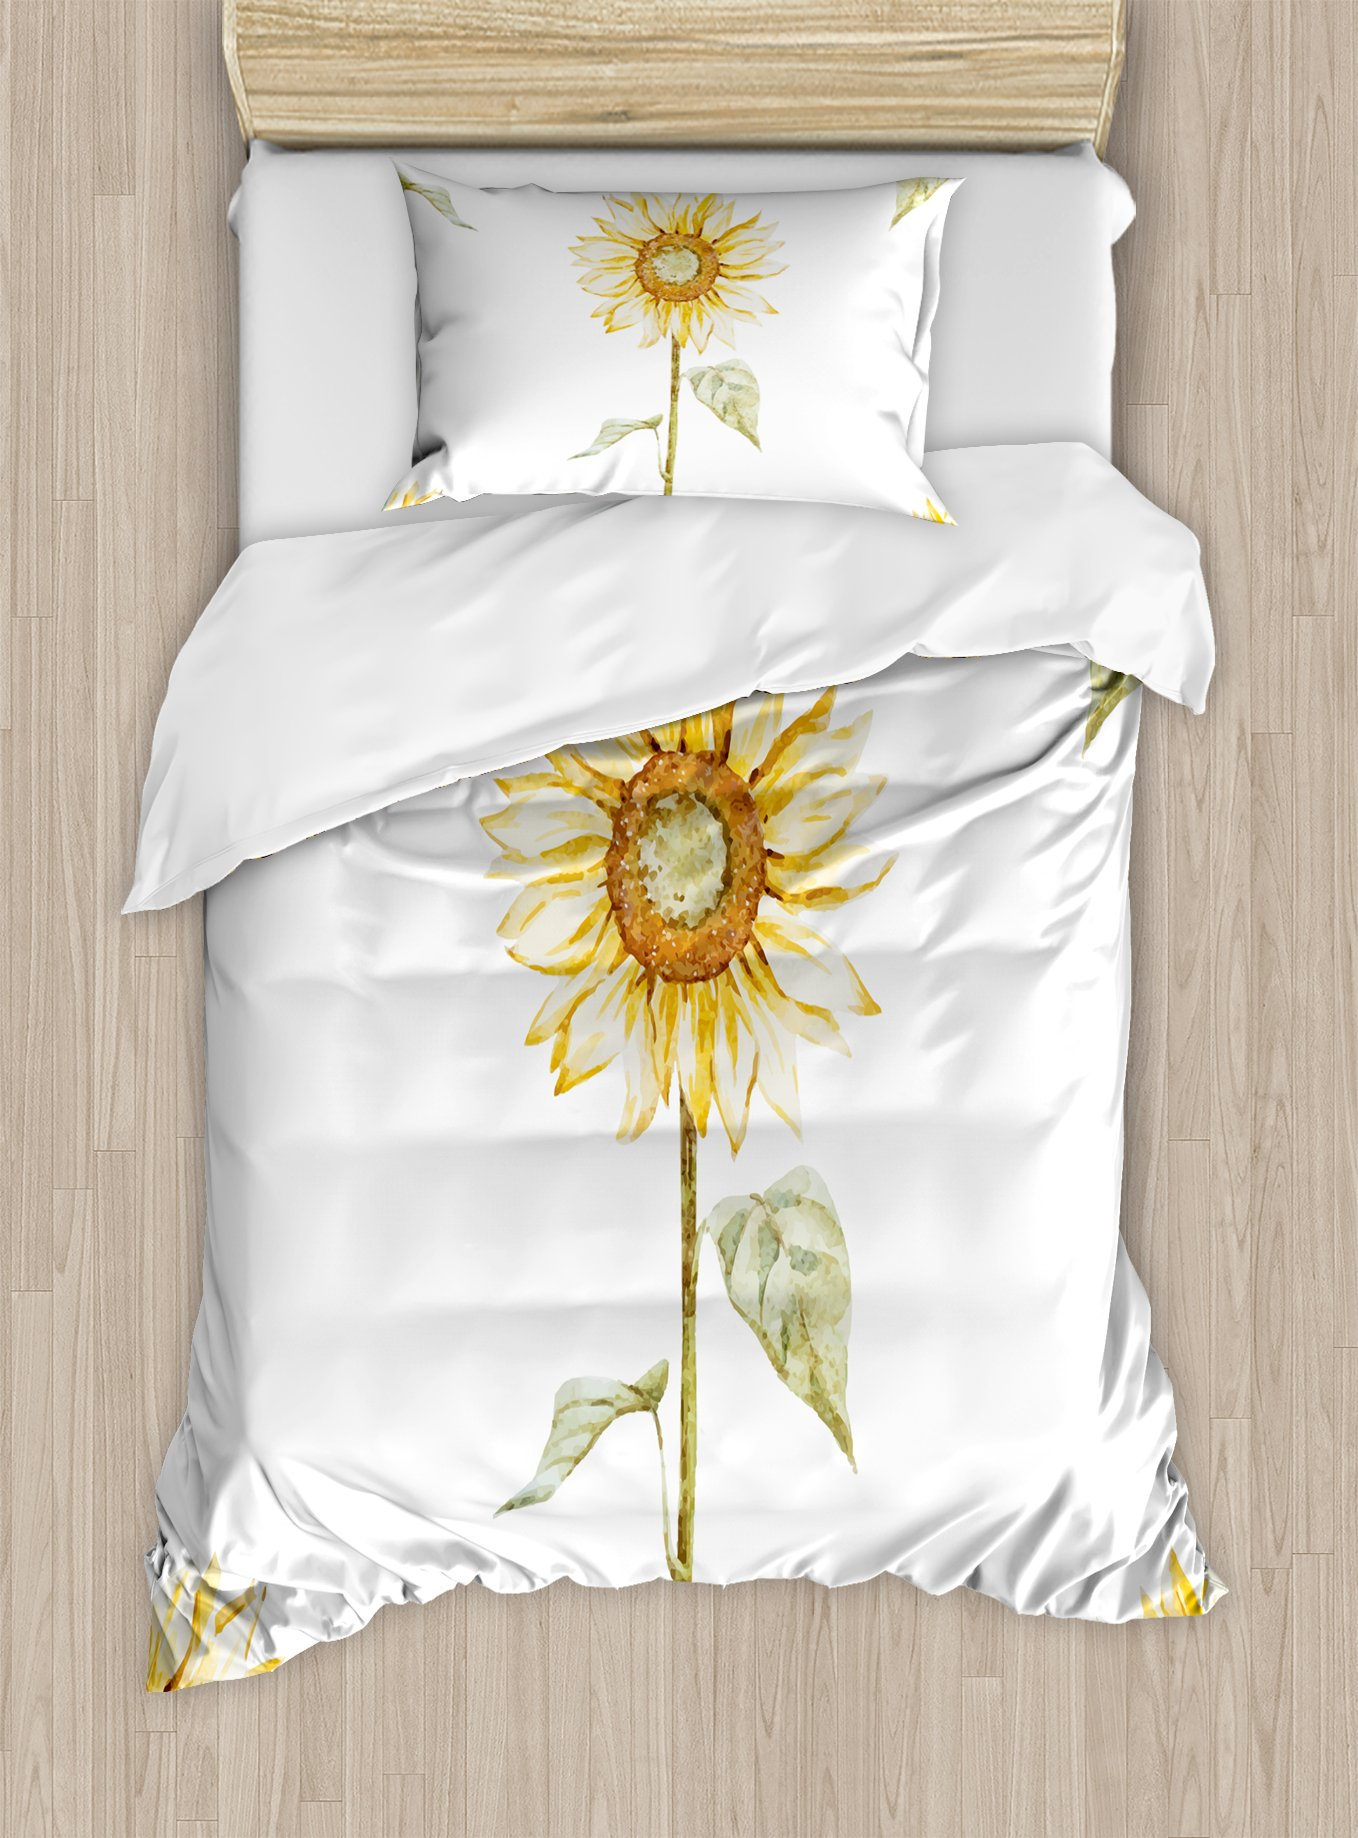 Ambesonne Sunflower Duvet Cover Set Twin Size, Sunflowers with Watercolor Painting Effect and in Minimalistic Design Artwork, Decorative 2 Piece Bedding Set with 1 Pillow Sham, Yellow Green